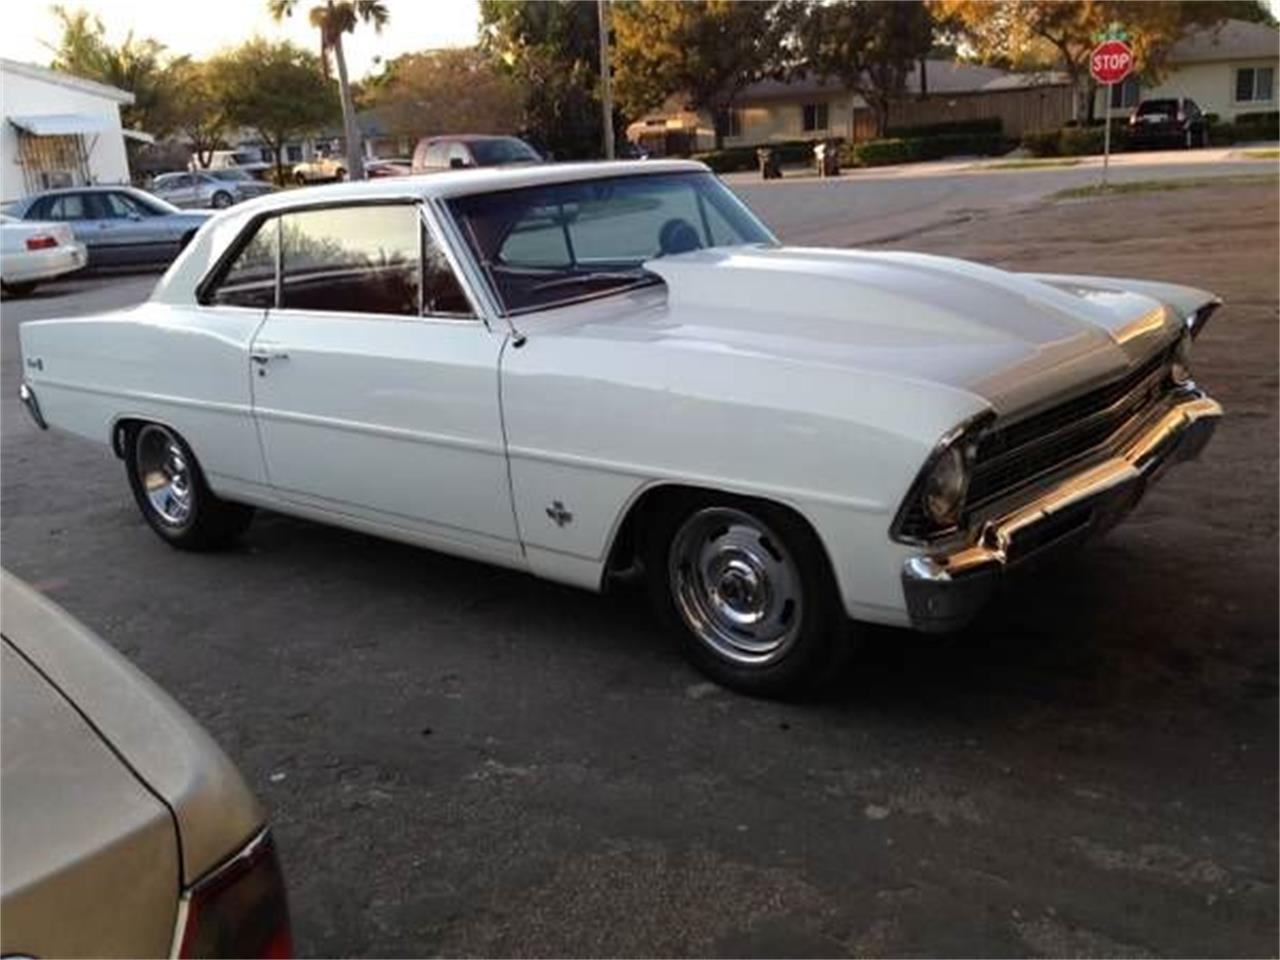 Large Picture of 1967 Chevy II located in Michigan Offered by Classic Car Deals - PKR9